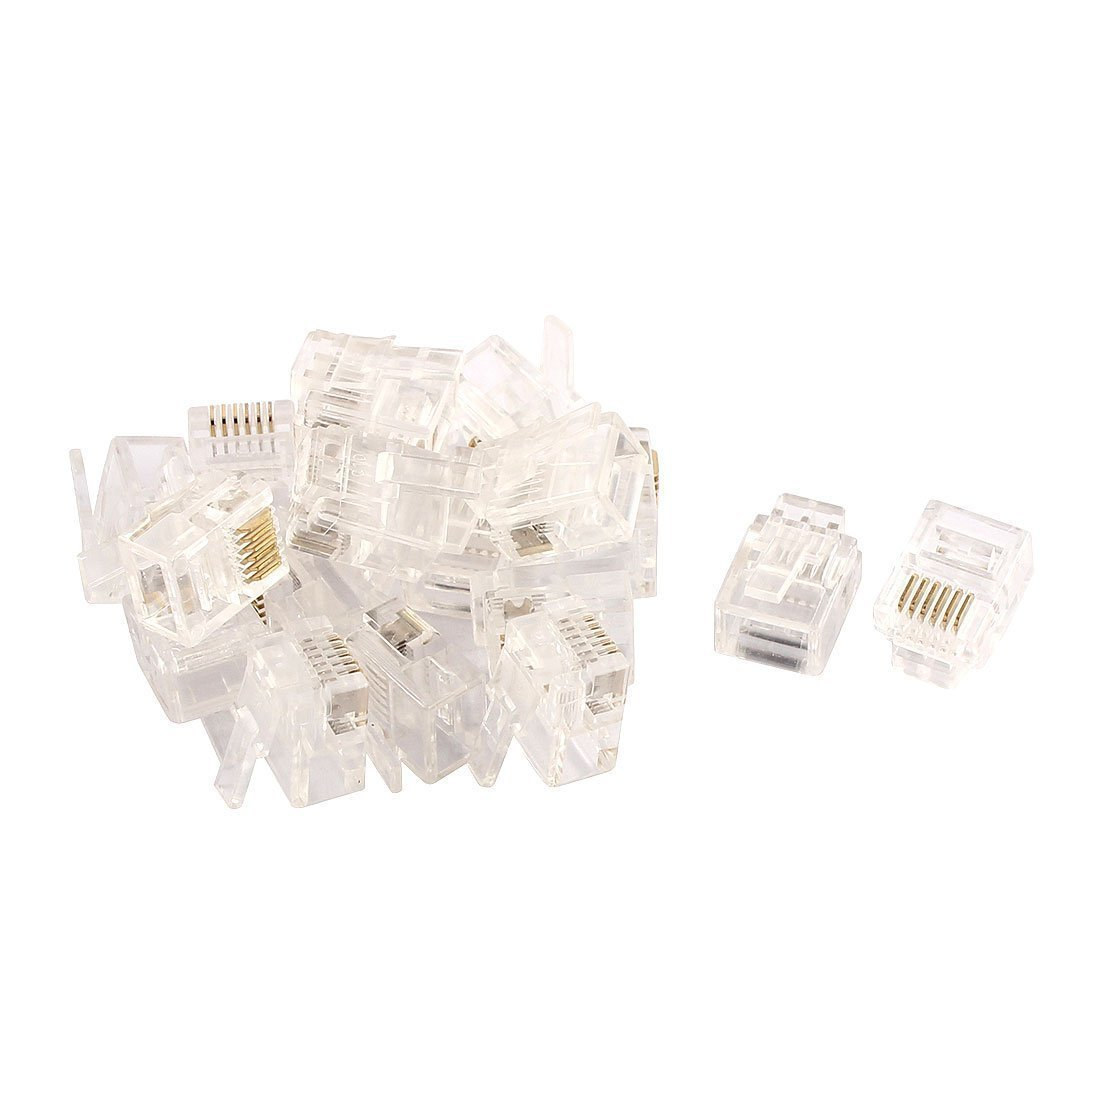 Home Mart 20pcs RJ12 6P6C Telephone Cable End Phone Adapter Connector Modular